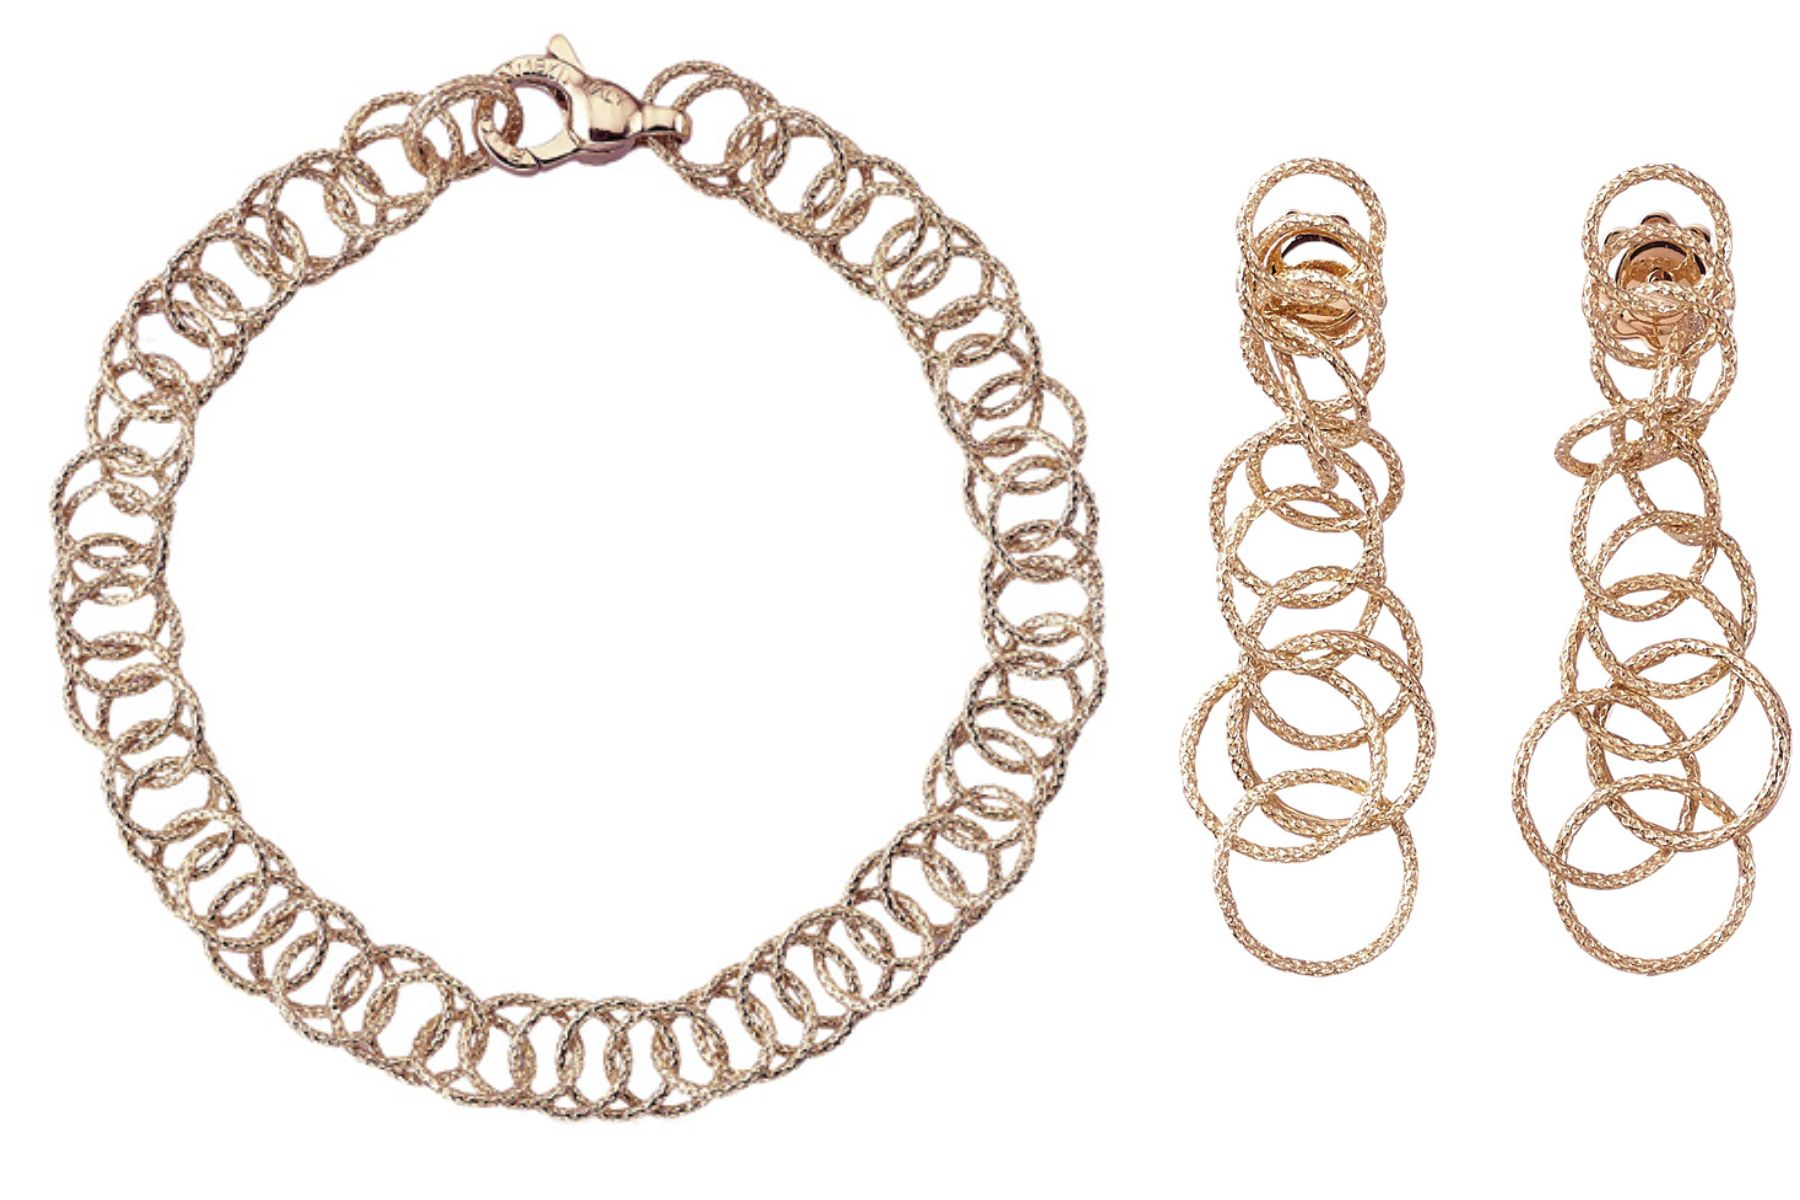 Hawaii necklace and earrings in pink gold, by Buccellati